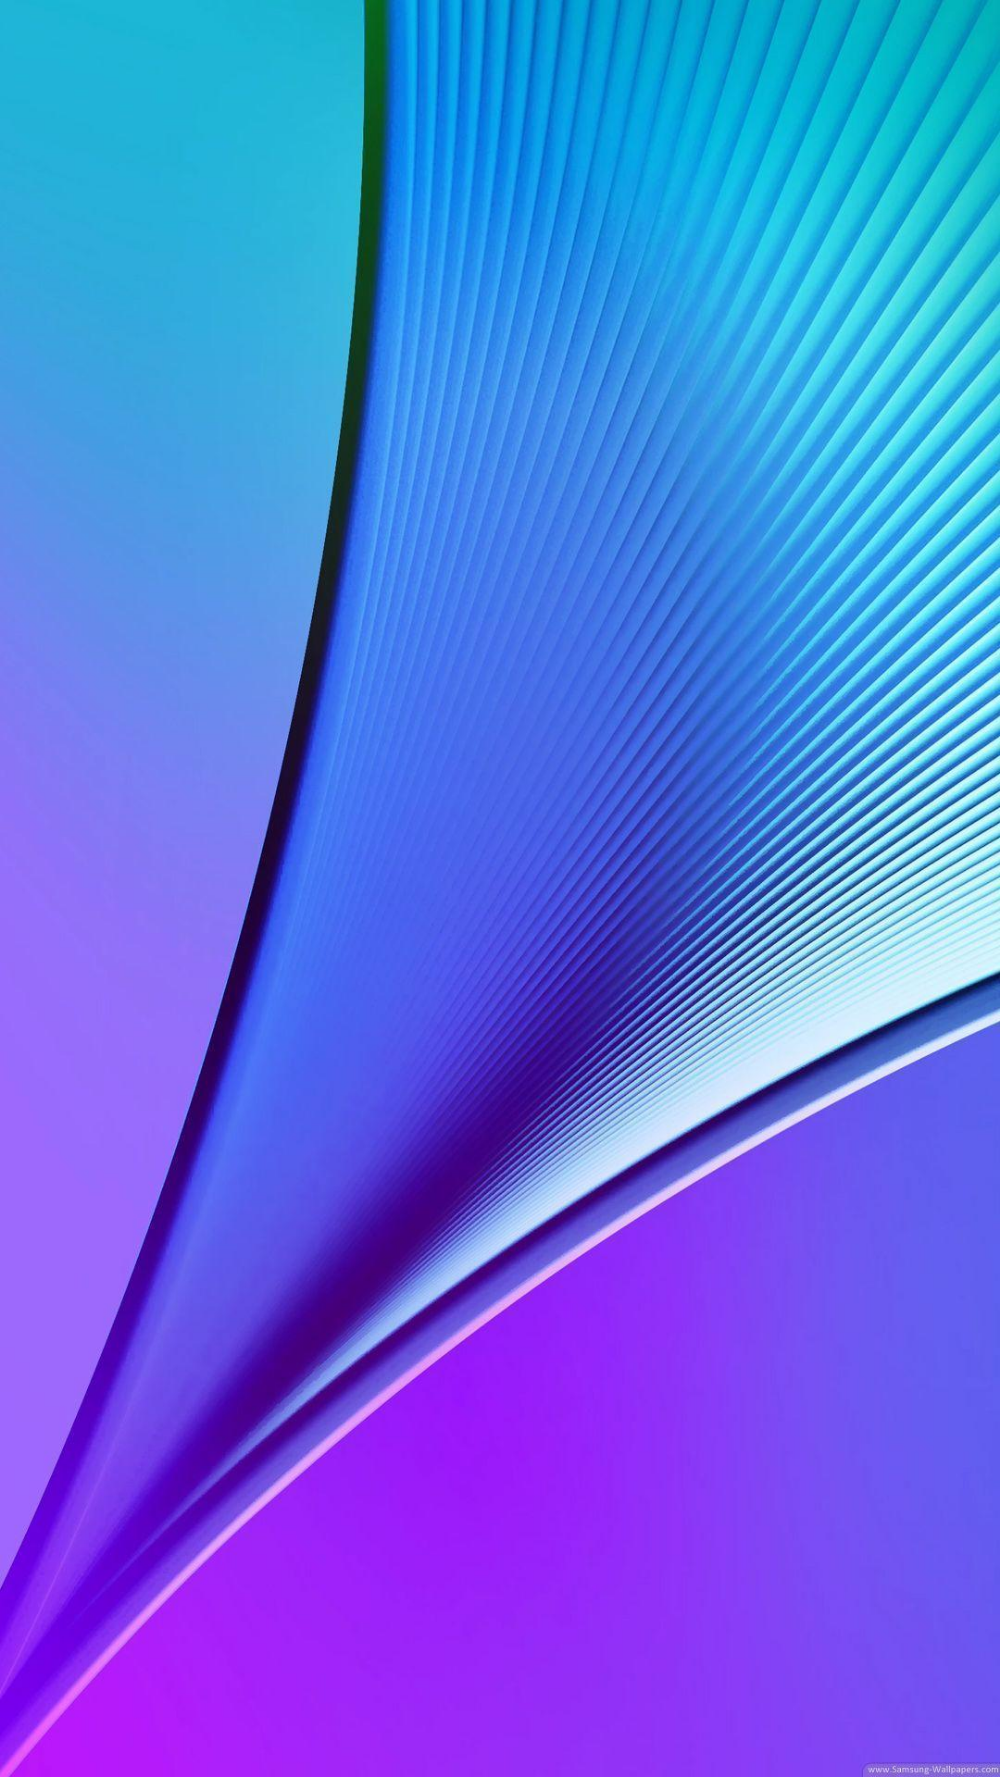 Full Hd Samsung Galaxy J7 Wallpapers Download 2 Wallpapers Samsung J7 Hd Wallpaper Down Geometric Wallpaper Iphone Abstract Iphone Wallpaper Iphone Wallpaper